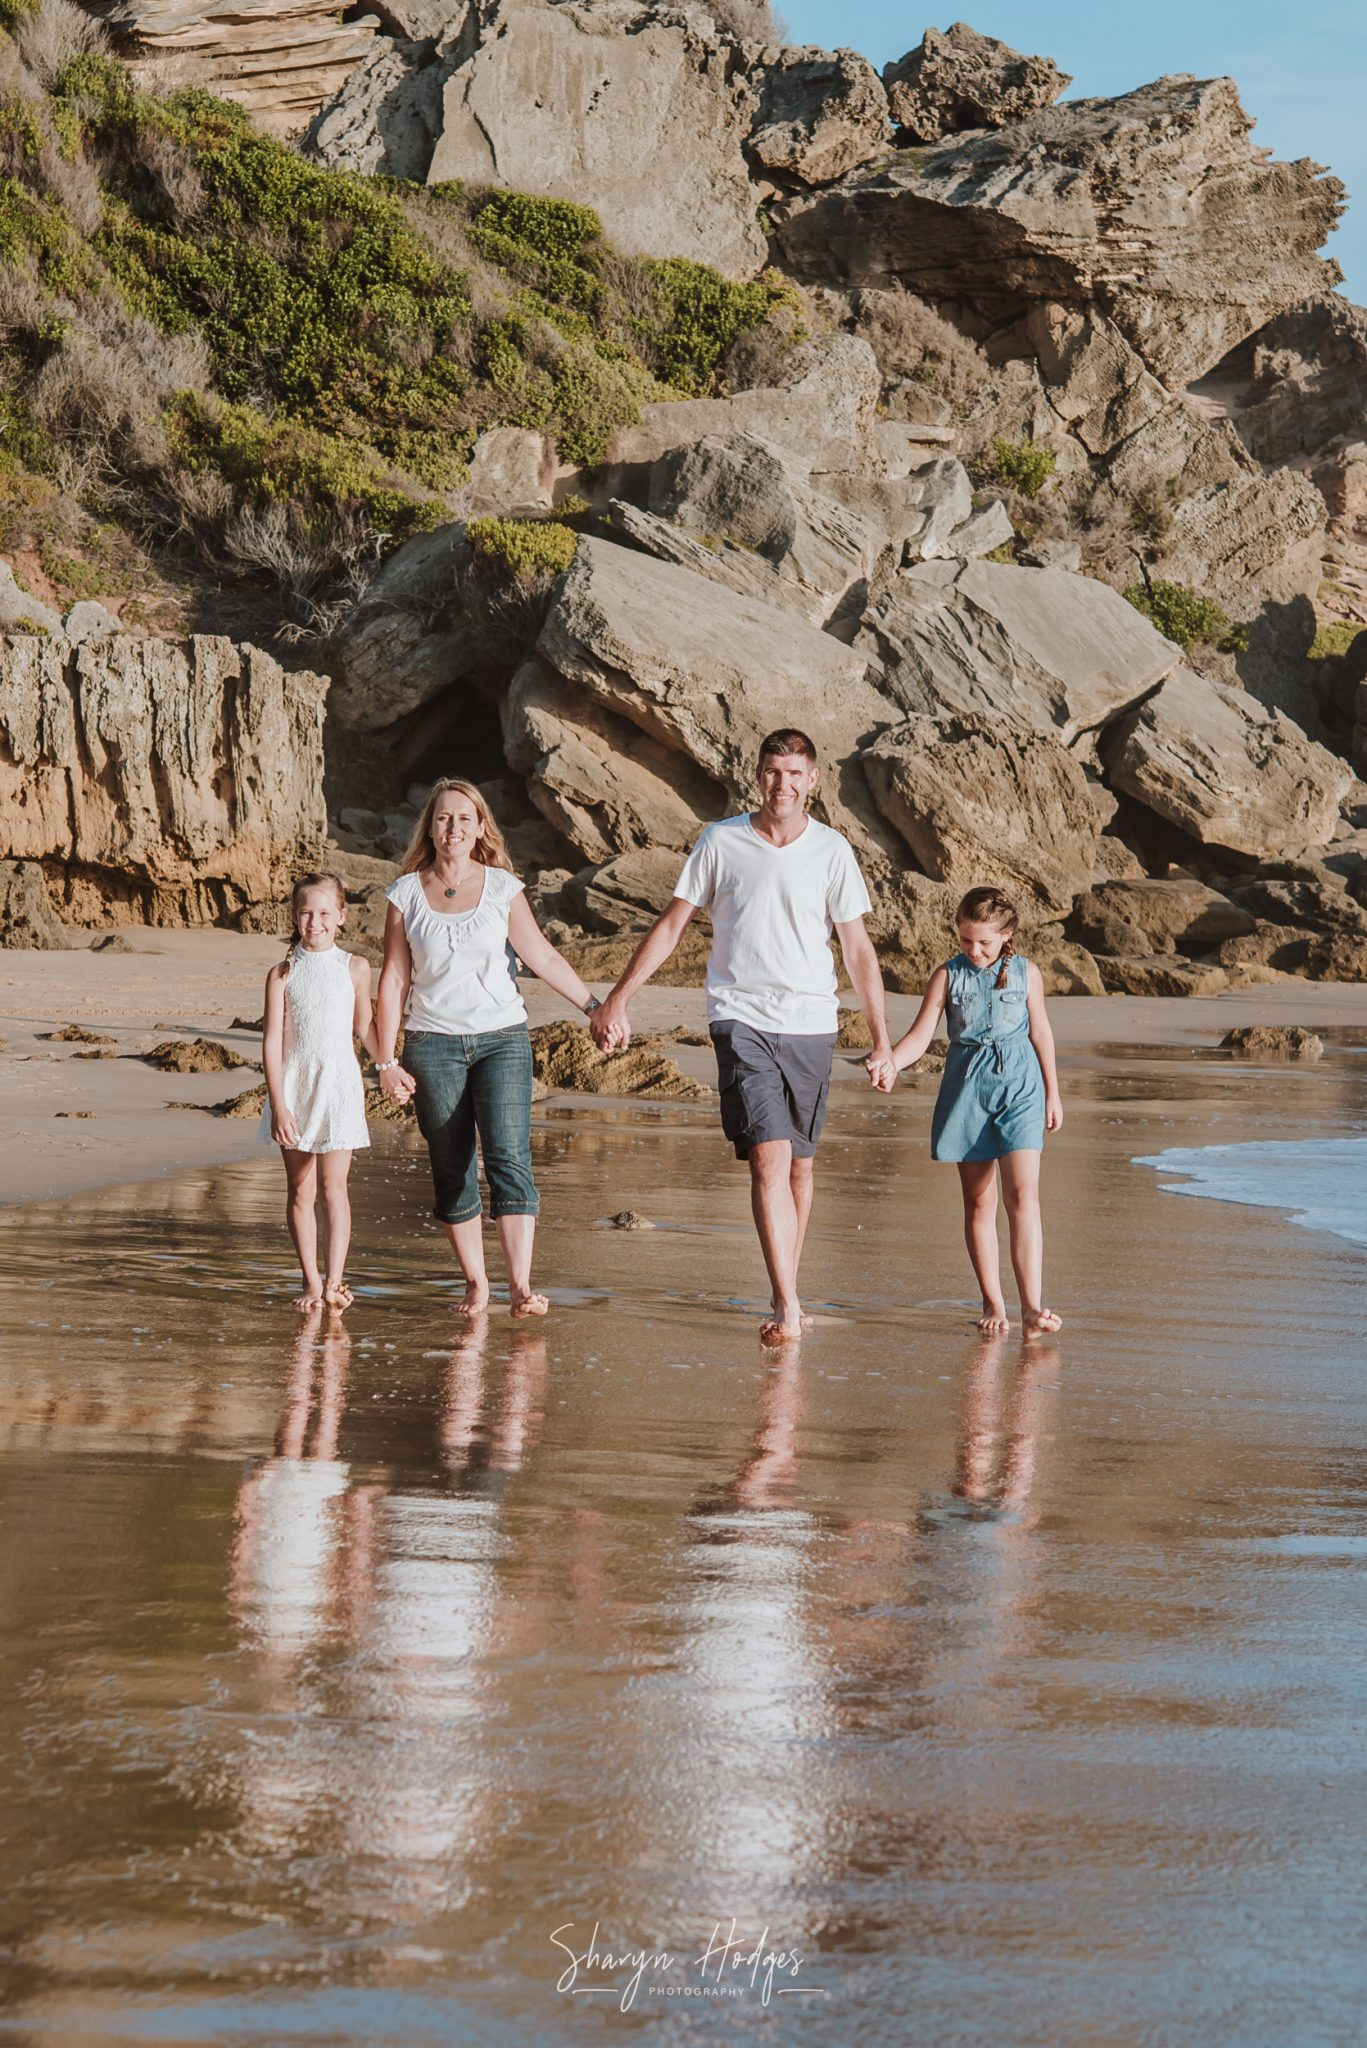 Brenton on sea, Knysna family photographer, garden route photography, beach shoots, Sharyn Hodges, sunset photo session